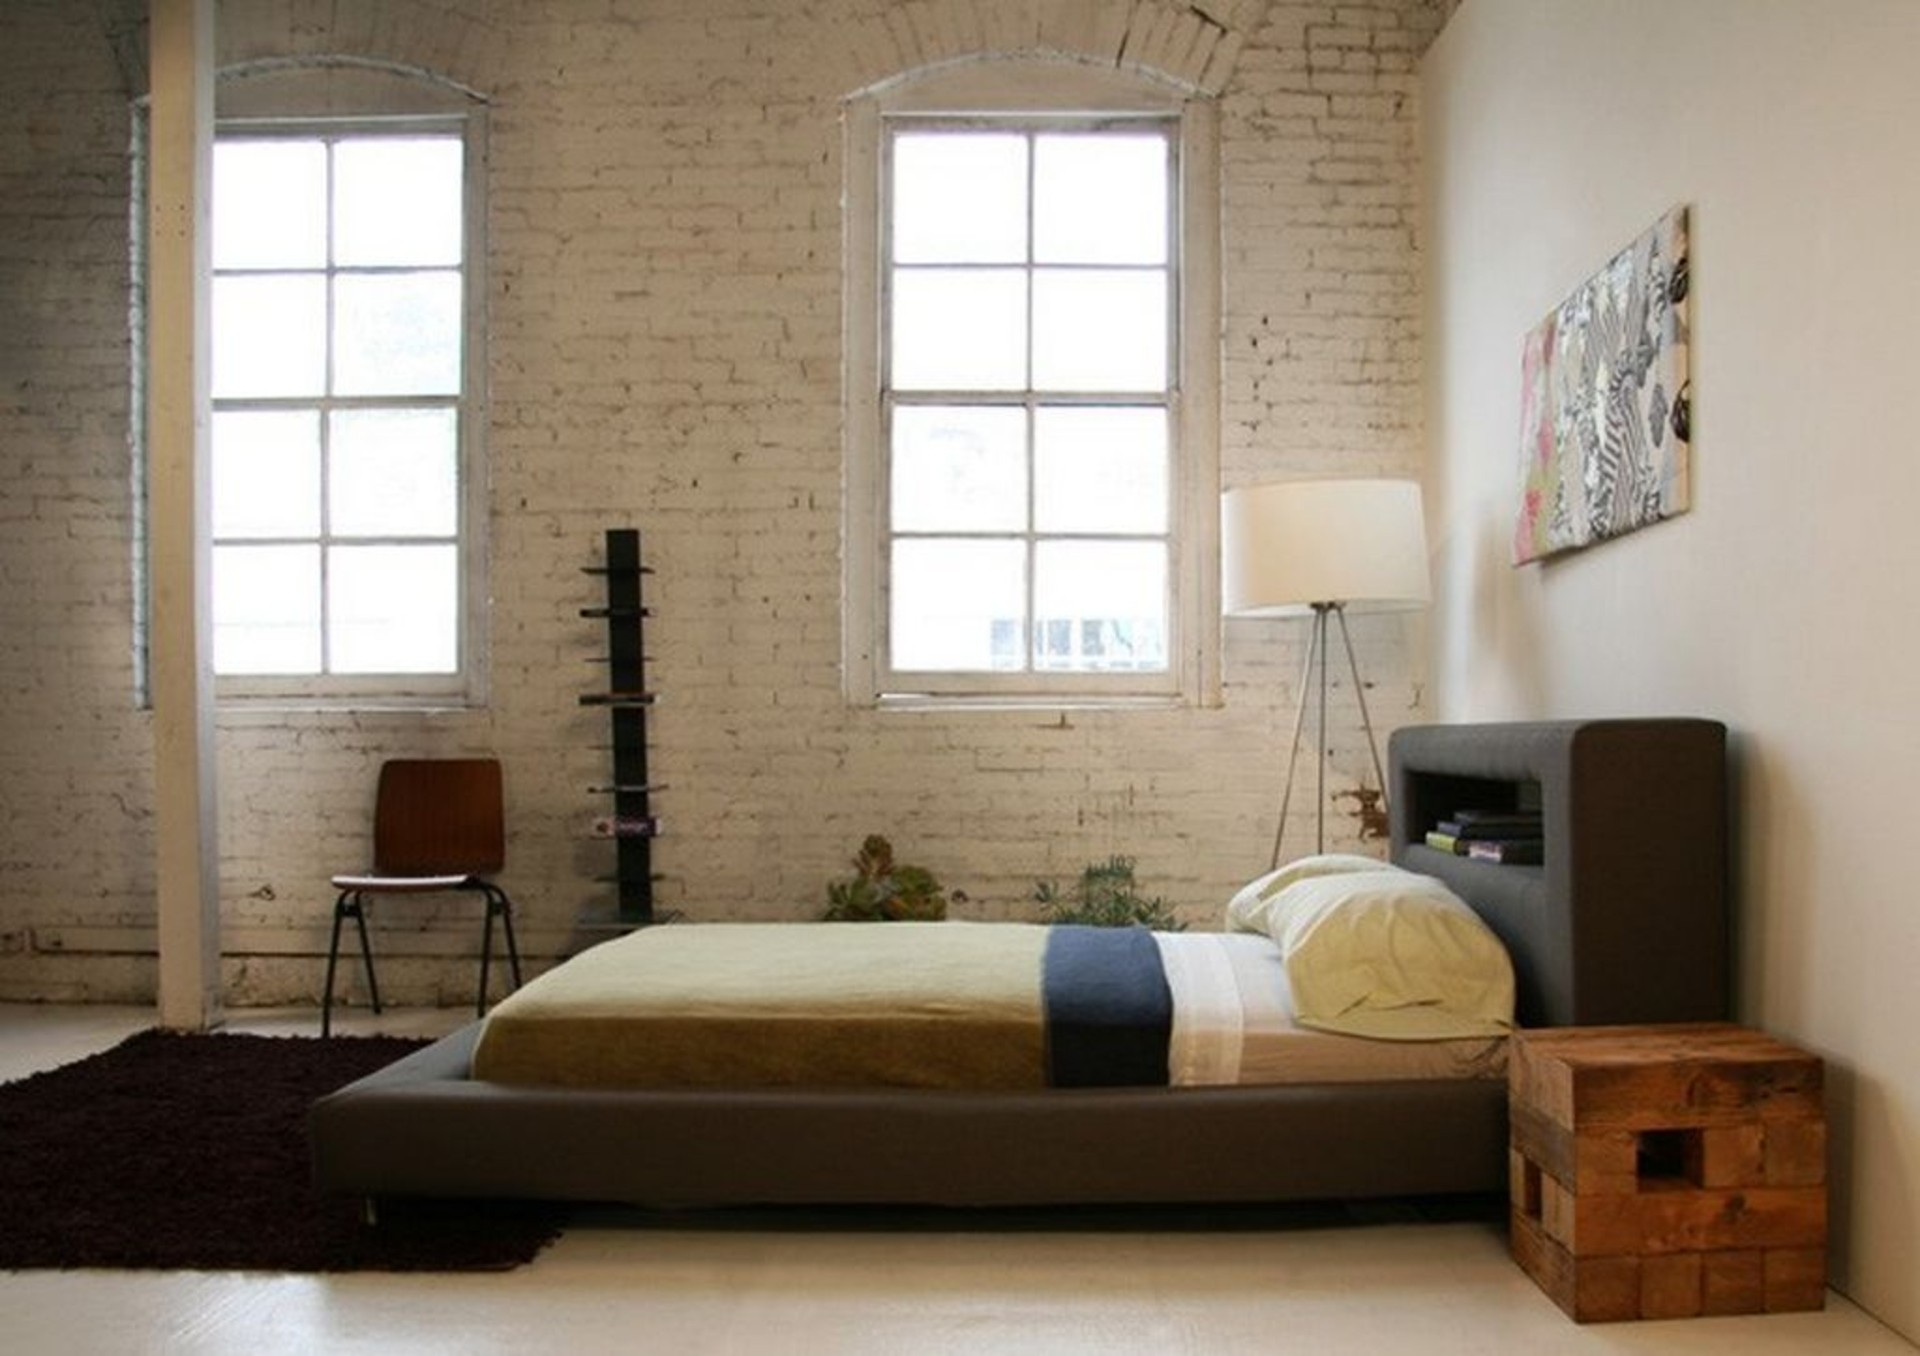 Minimalist Platform Bed: Designs and Pictures - HomesFeed on Bedroom Design Minimalist  id=22800